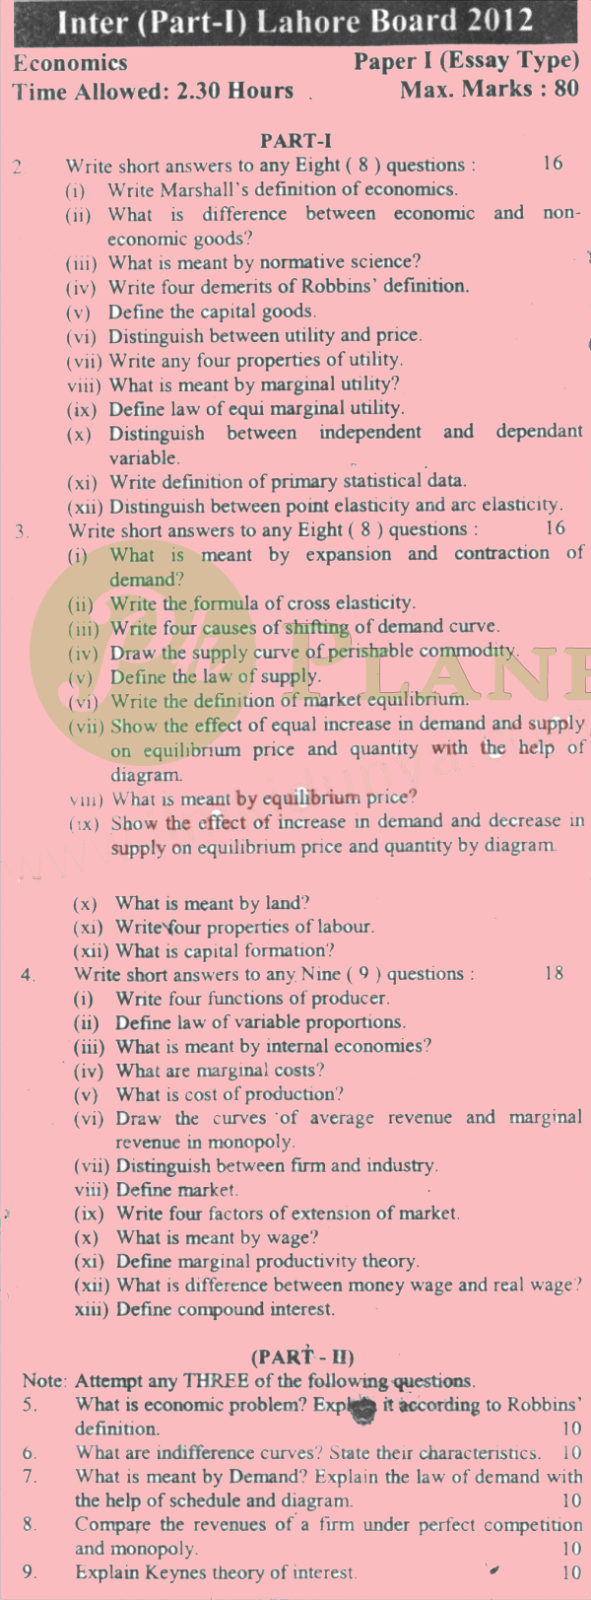 Past Papers of Economics Inter Part 1 Lahore Board 2012 in English